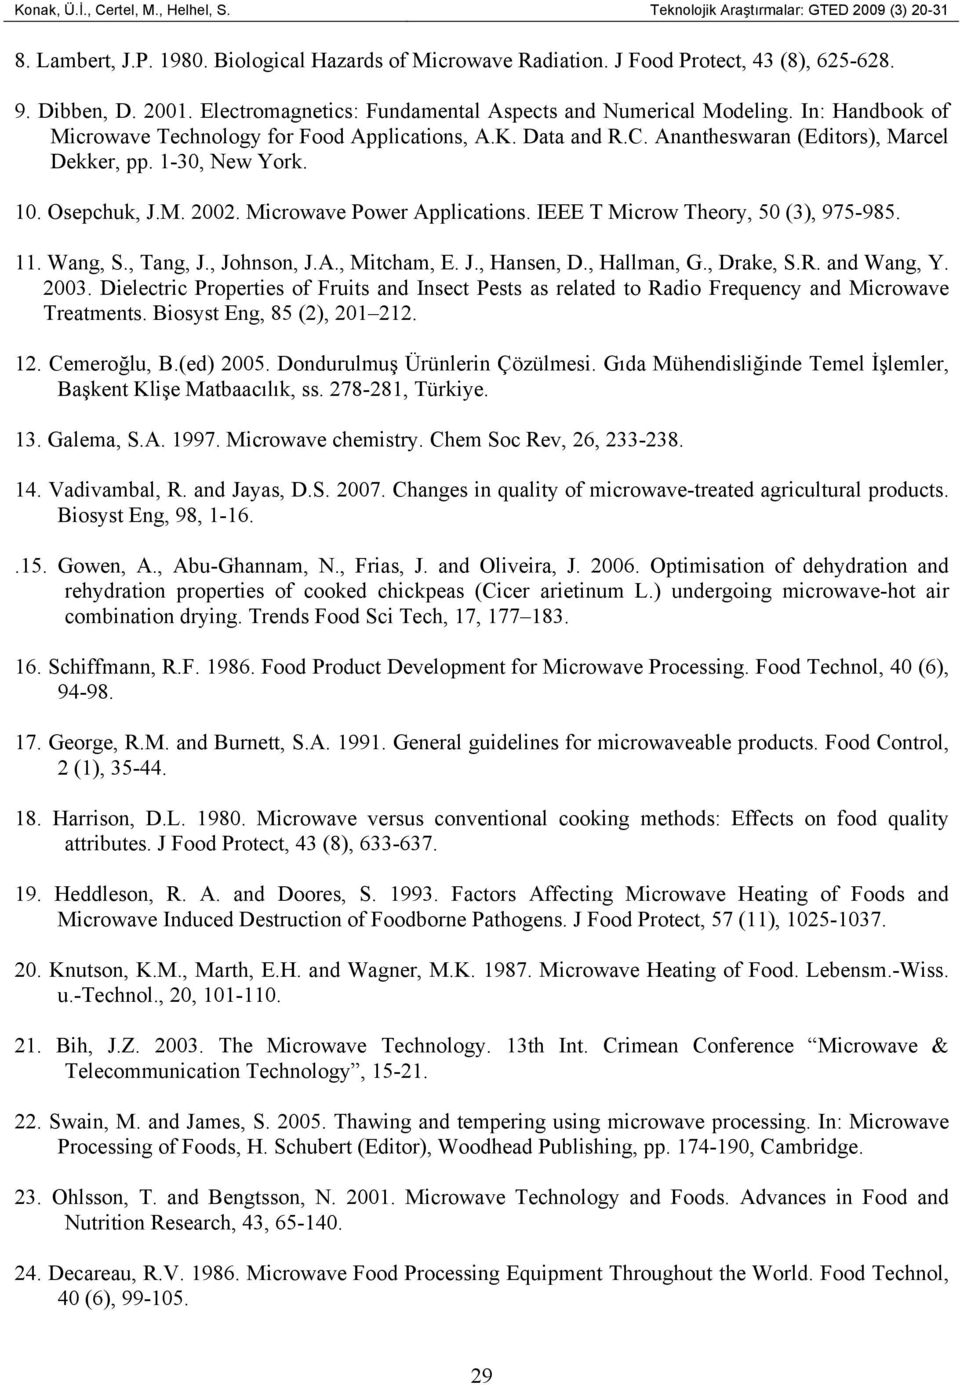 10. Osepchuk, J.M. 2002. Microwave Power Applications. IEEE T Microw Theory, 50 (3), 975-985. 11. Wang, S., Tang, J., Johnson, J.A., Mitcham, E. J., Hansen, D., Hallman, G., Drake, S.R. and Wang, Y.